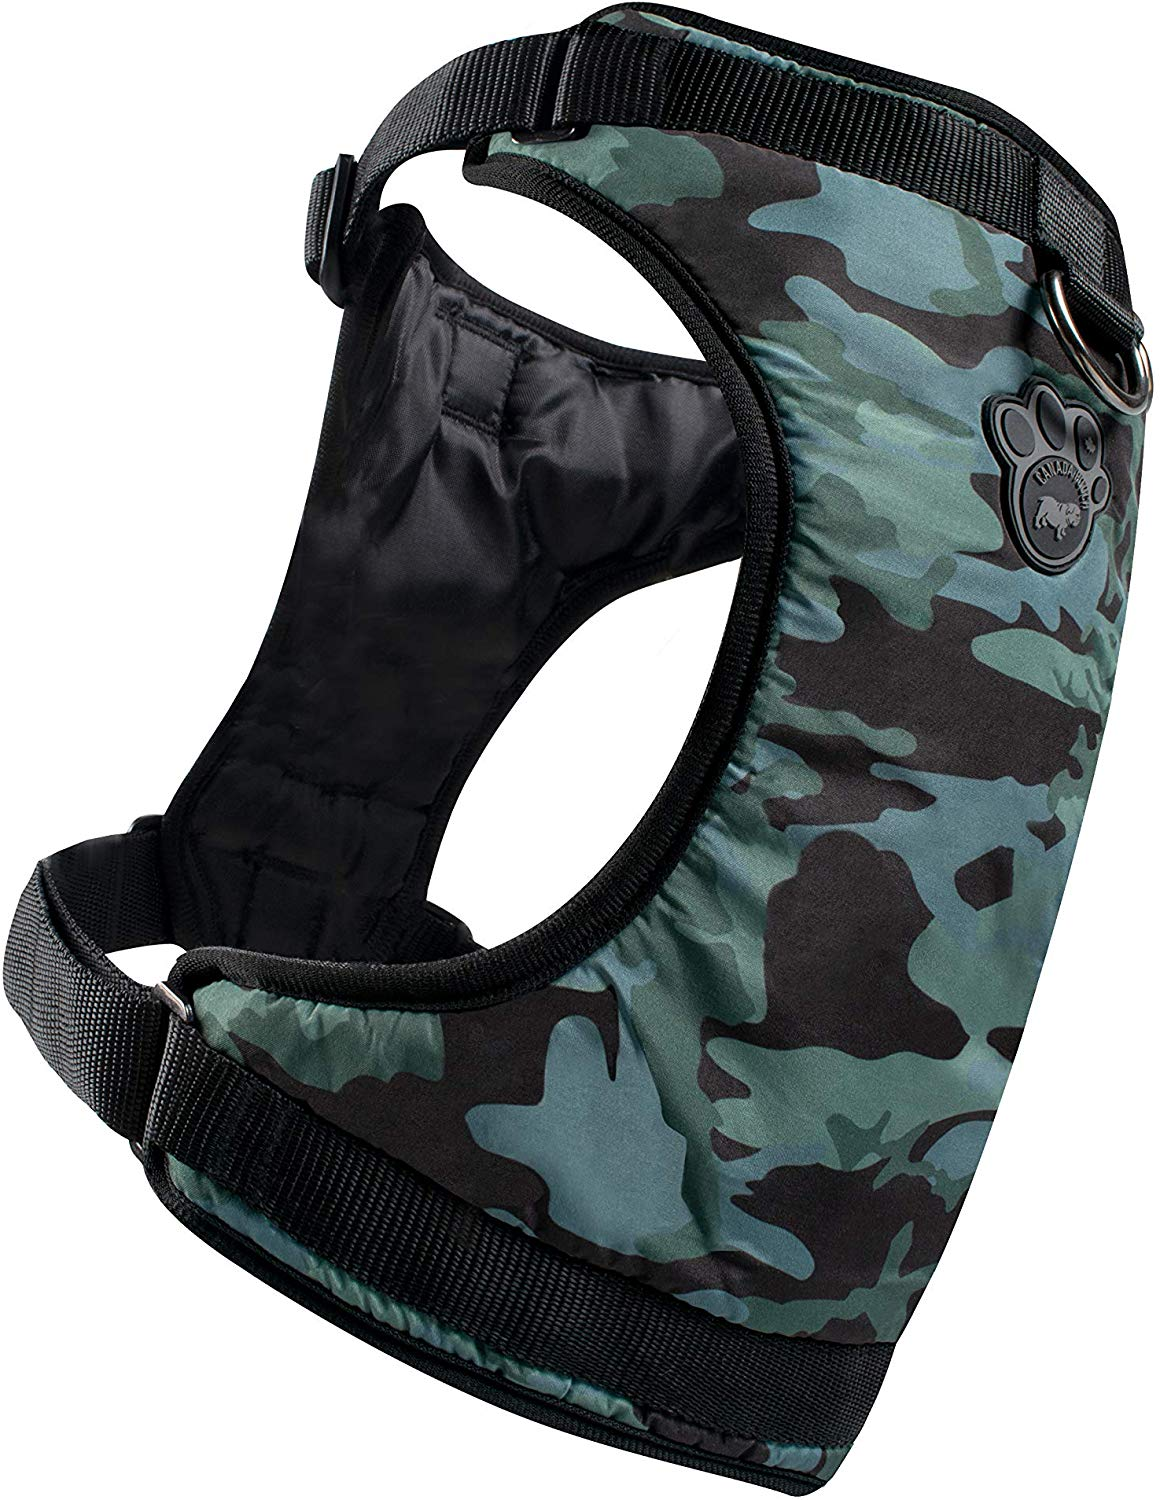 Canada Pooch The Everything Water-Resistant Dog Harness, Camo, Large